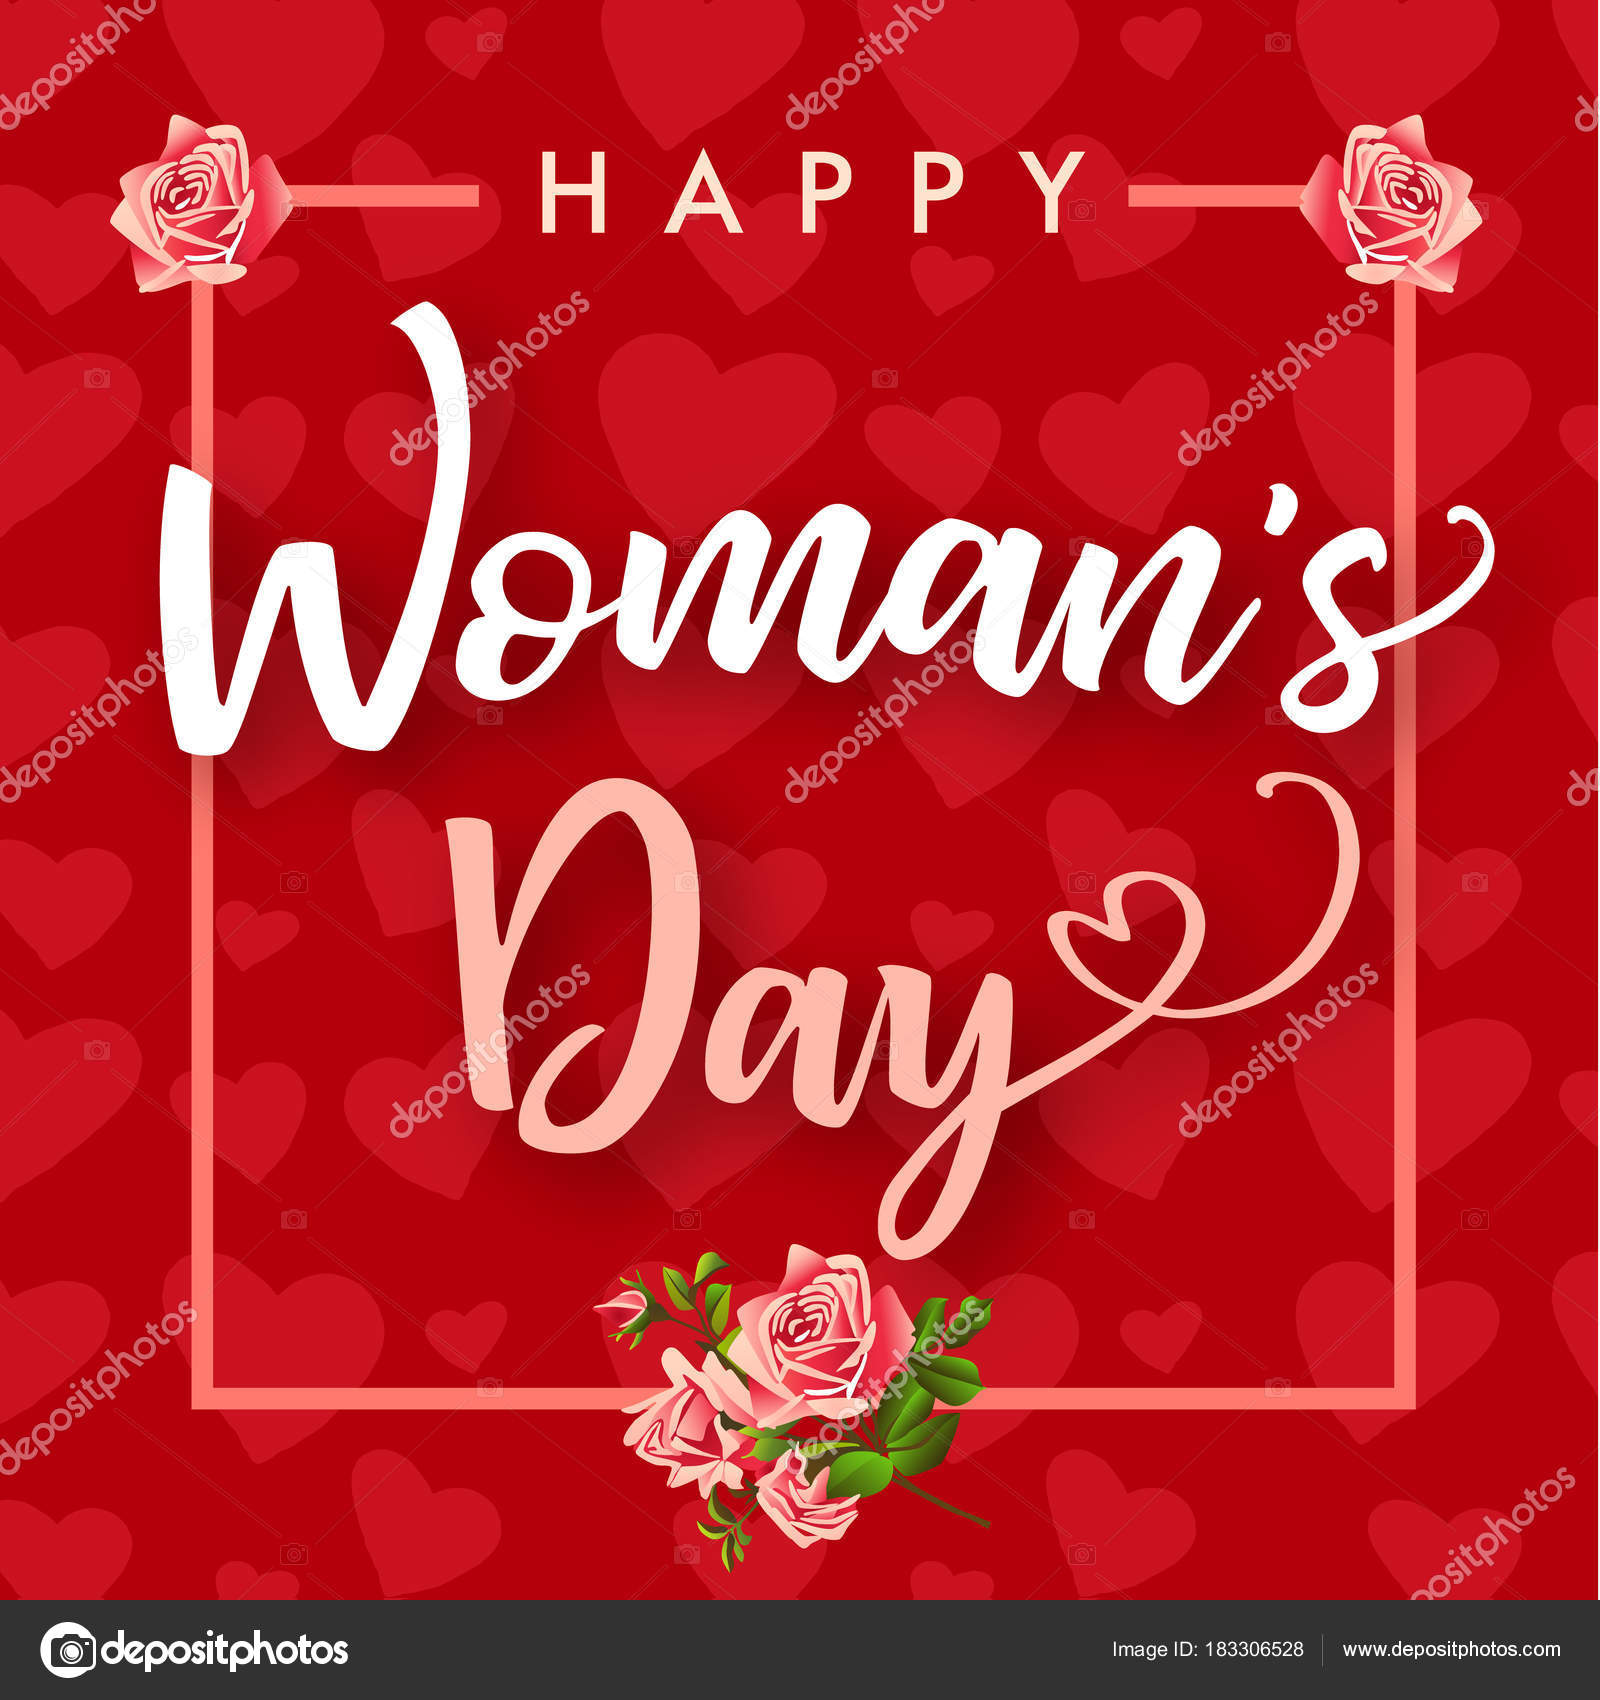 Happy womens day march rose flower hearts banner women day stock happy womens day march 8 rose flower and hearts banner womens day greeting card template with typography text happy womens day on red hearts background kristyandbryce Gallery